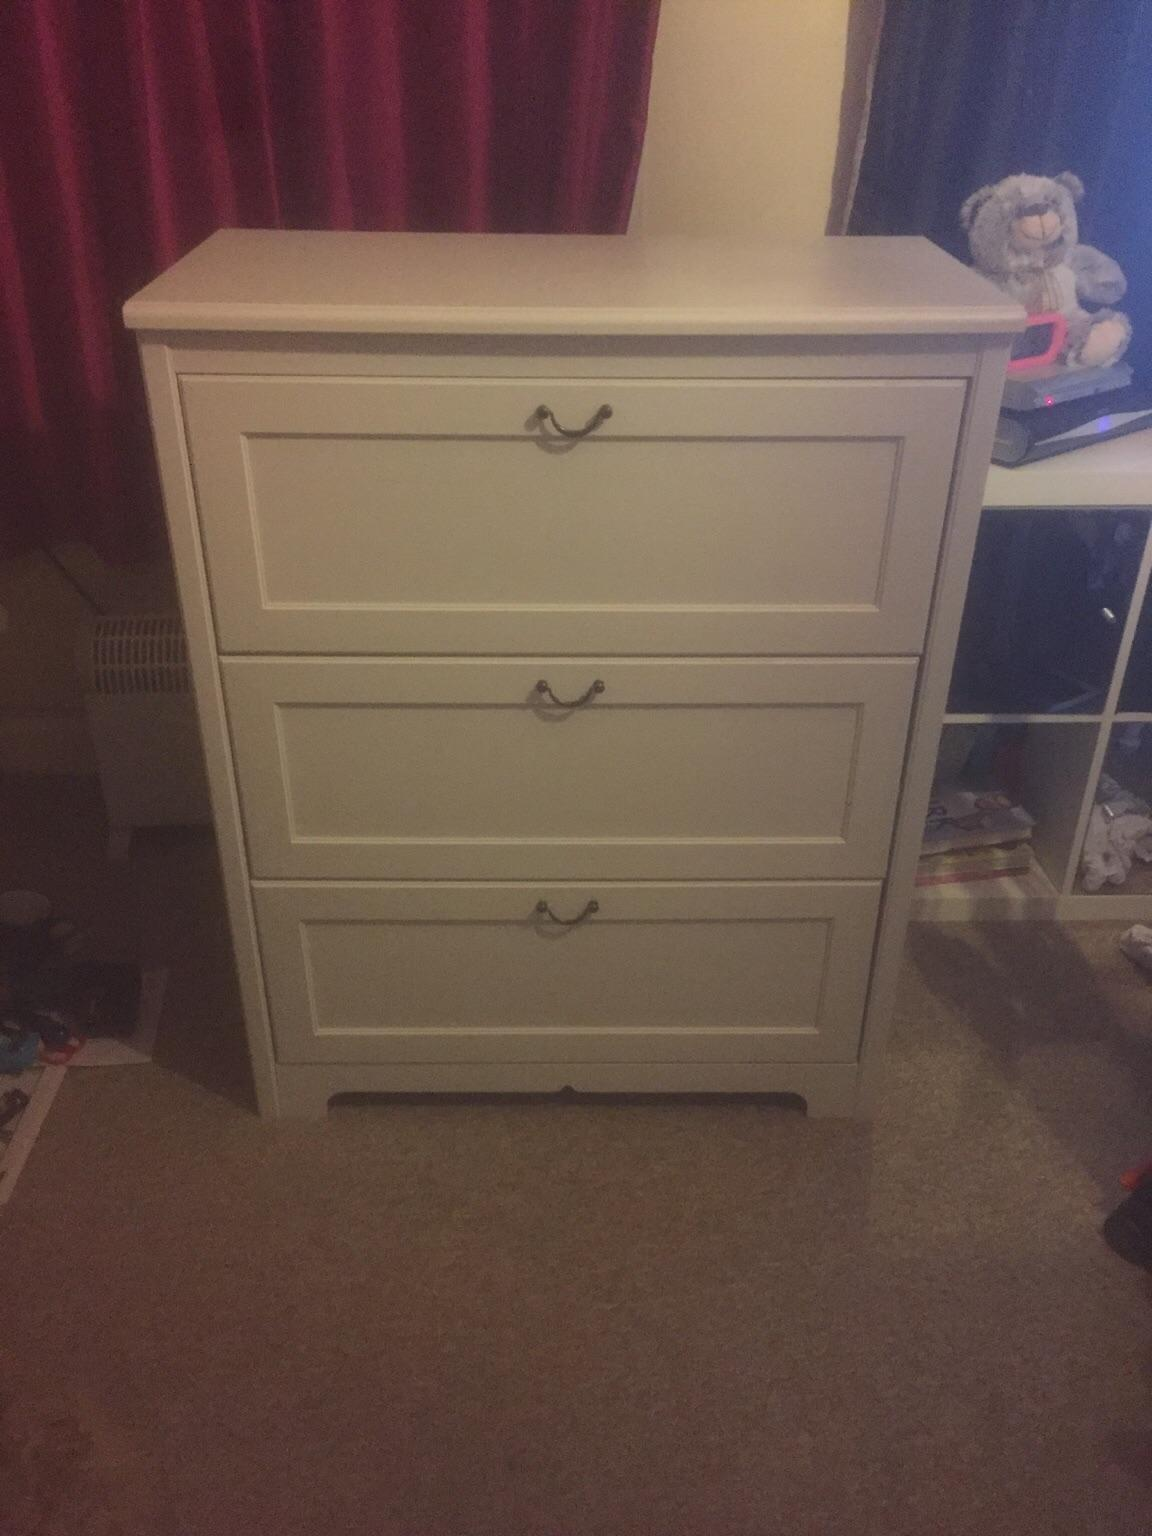 Ikea Aspelund chest of draws in SM3